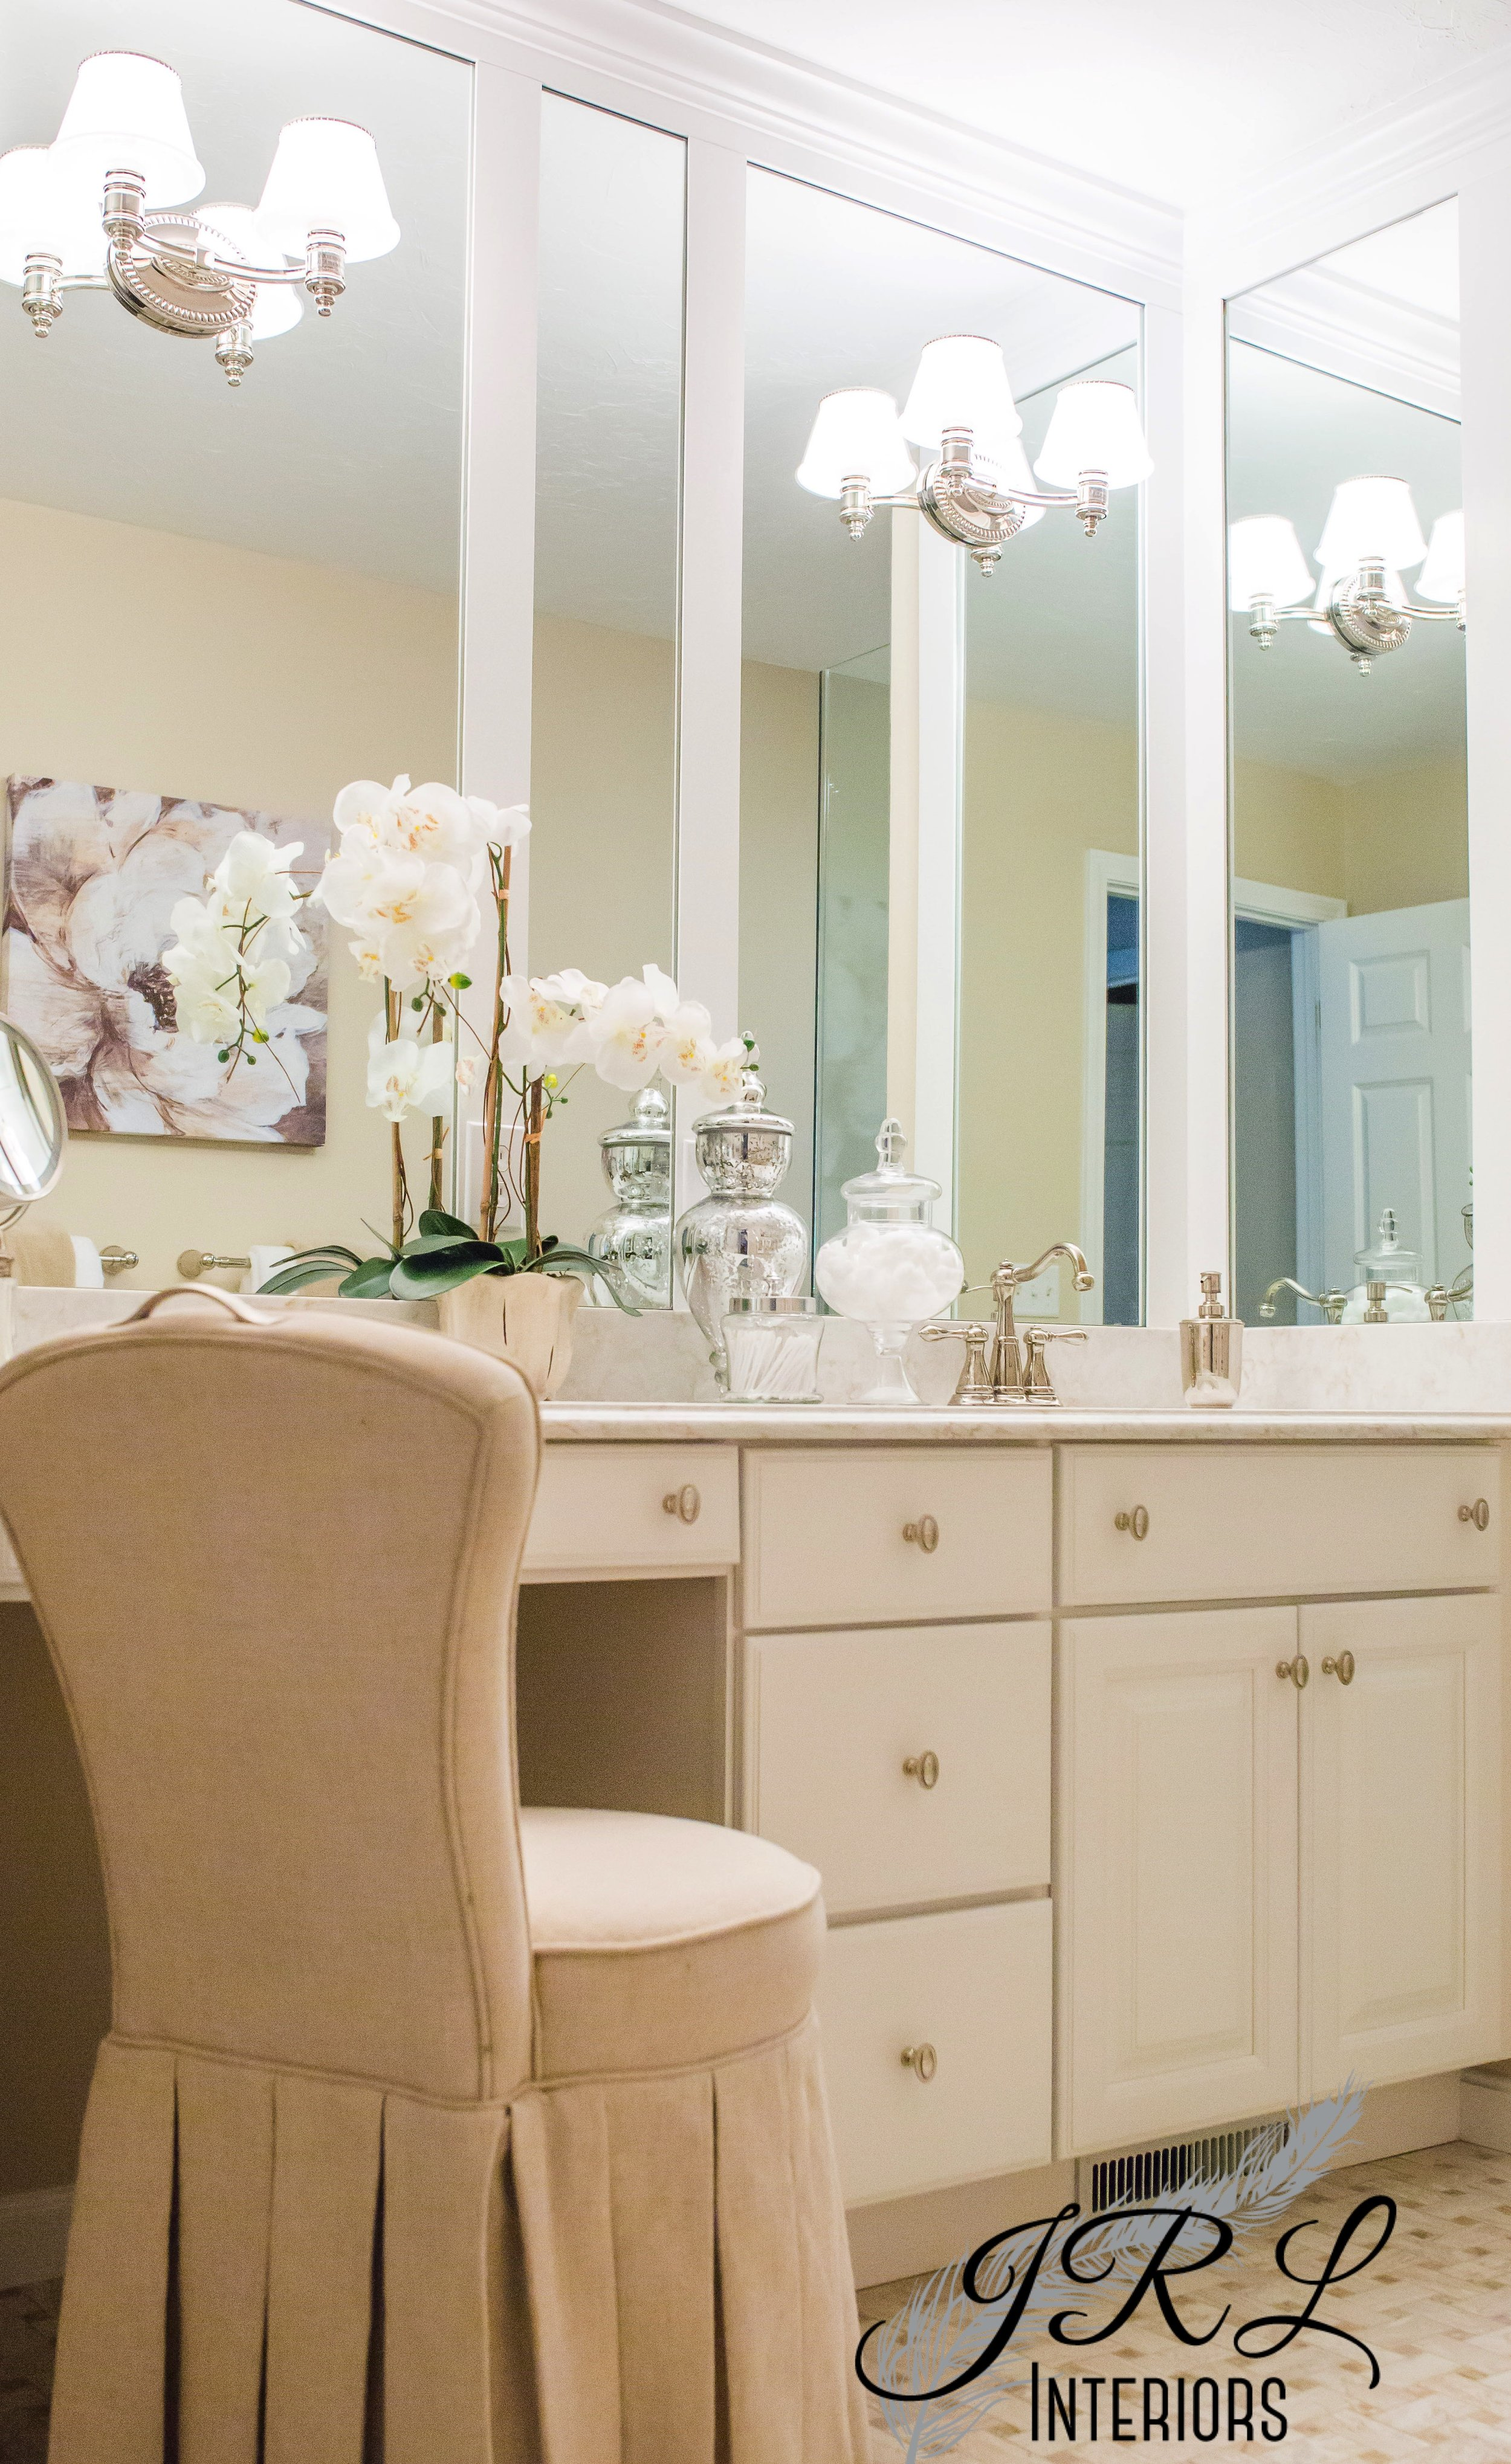 Classic finishes make for timeless style in this master bathroom renovation